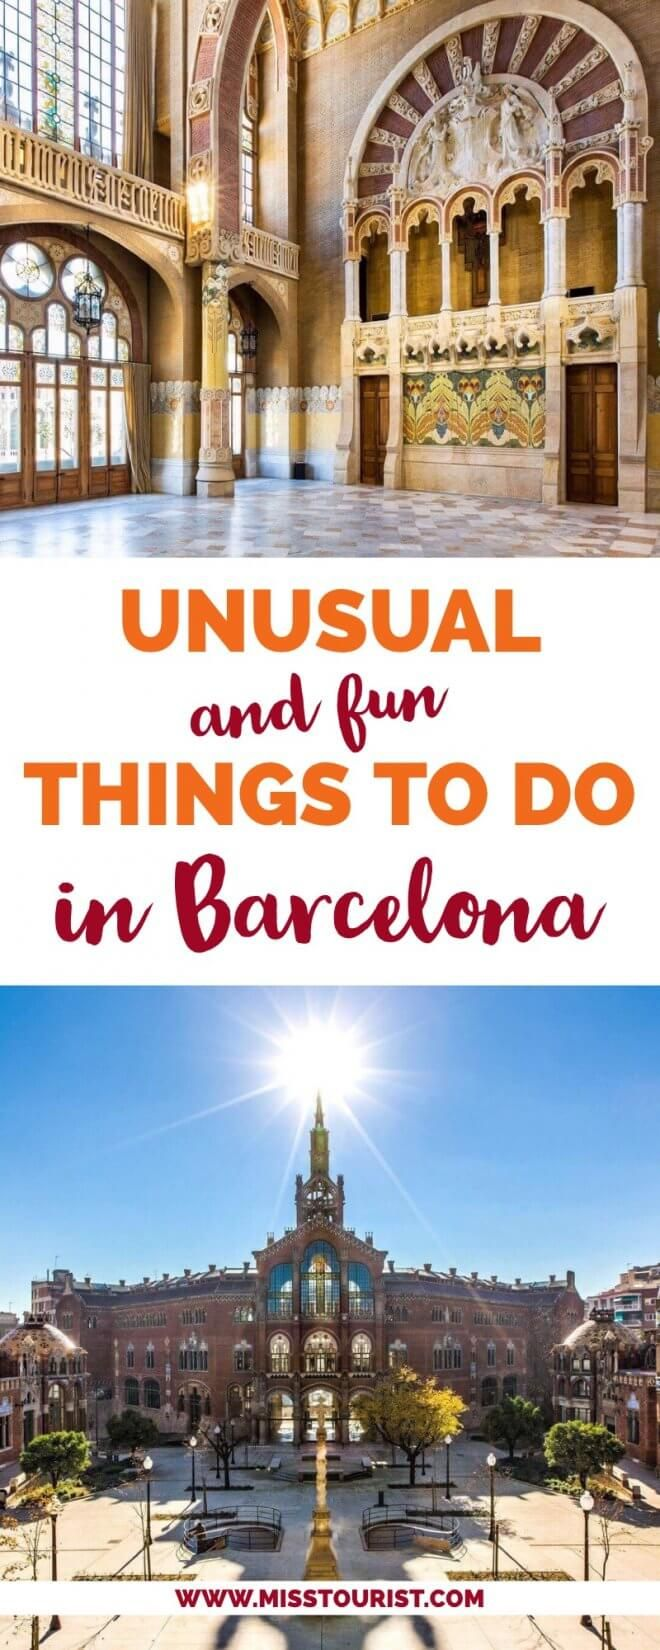 8 Unusual And Fun Things To Do